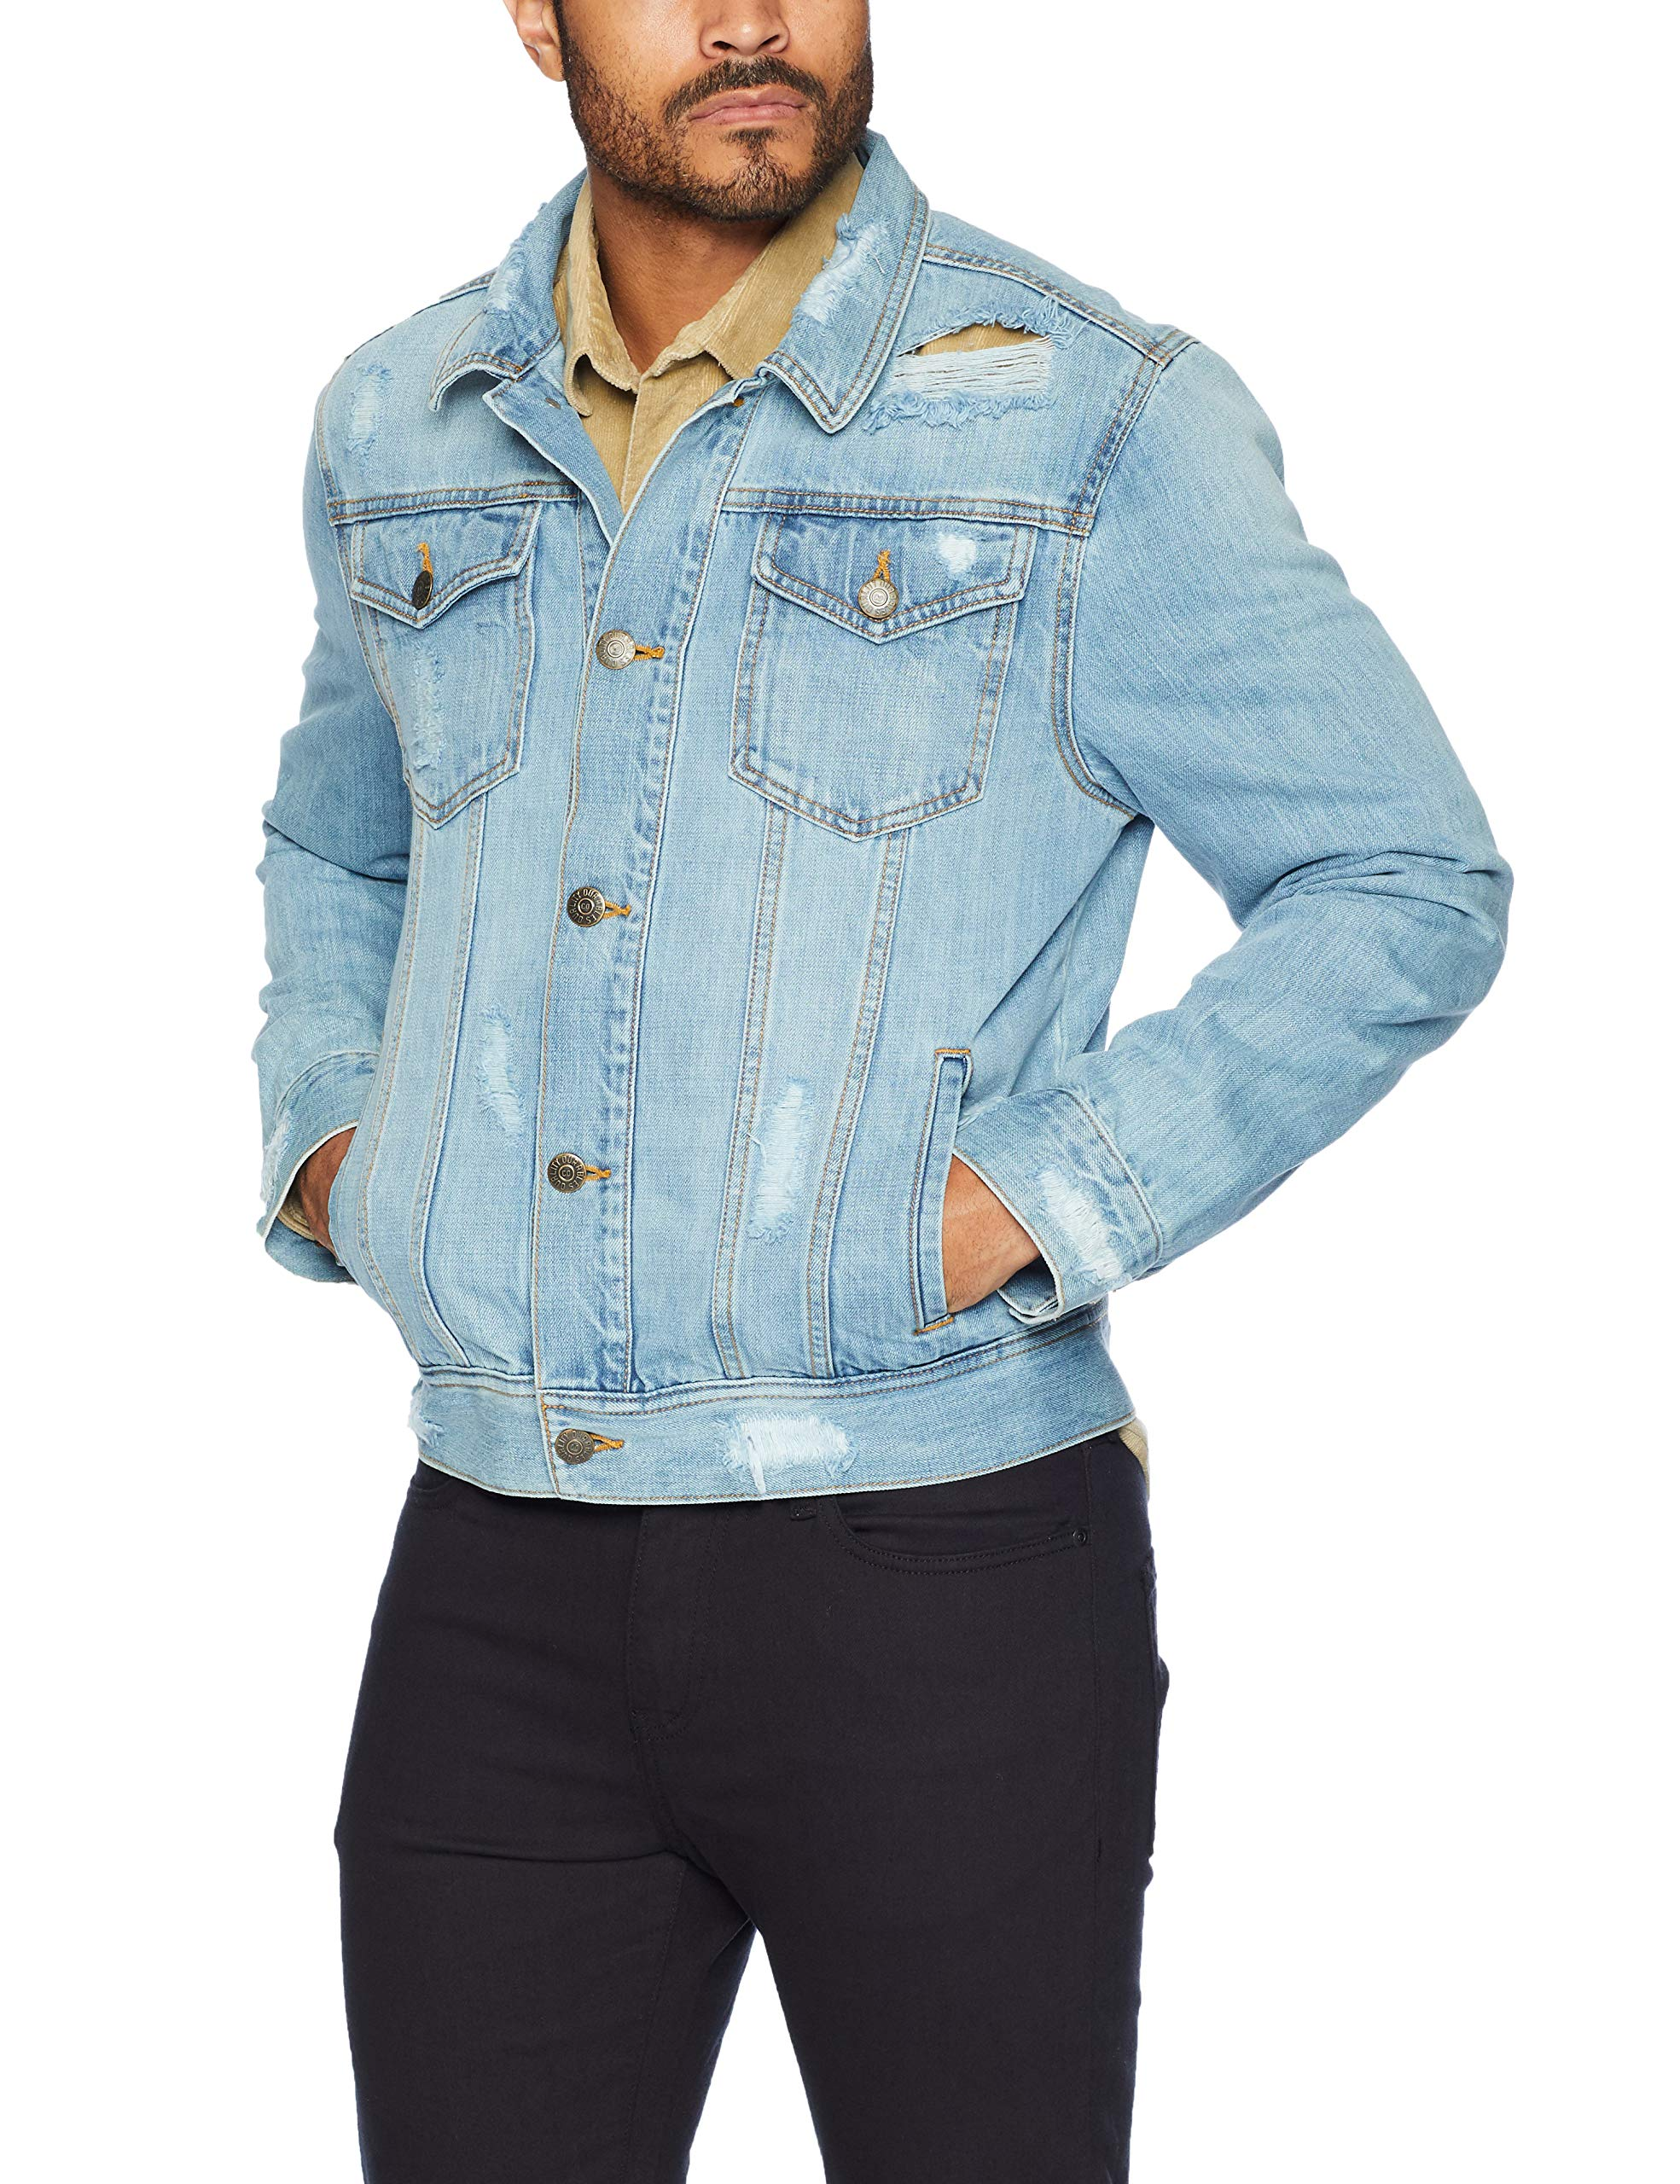 Quality Durables Co. Men's Regular-Fit Distressed Jean Jacket M by Quality Durables Co.